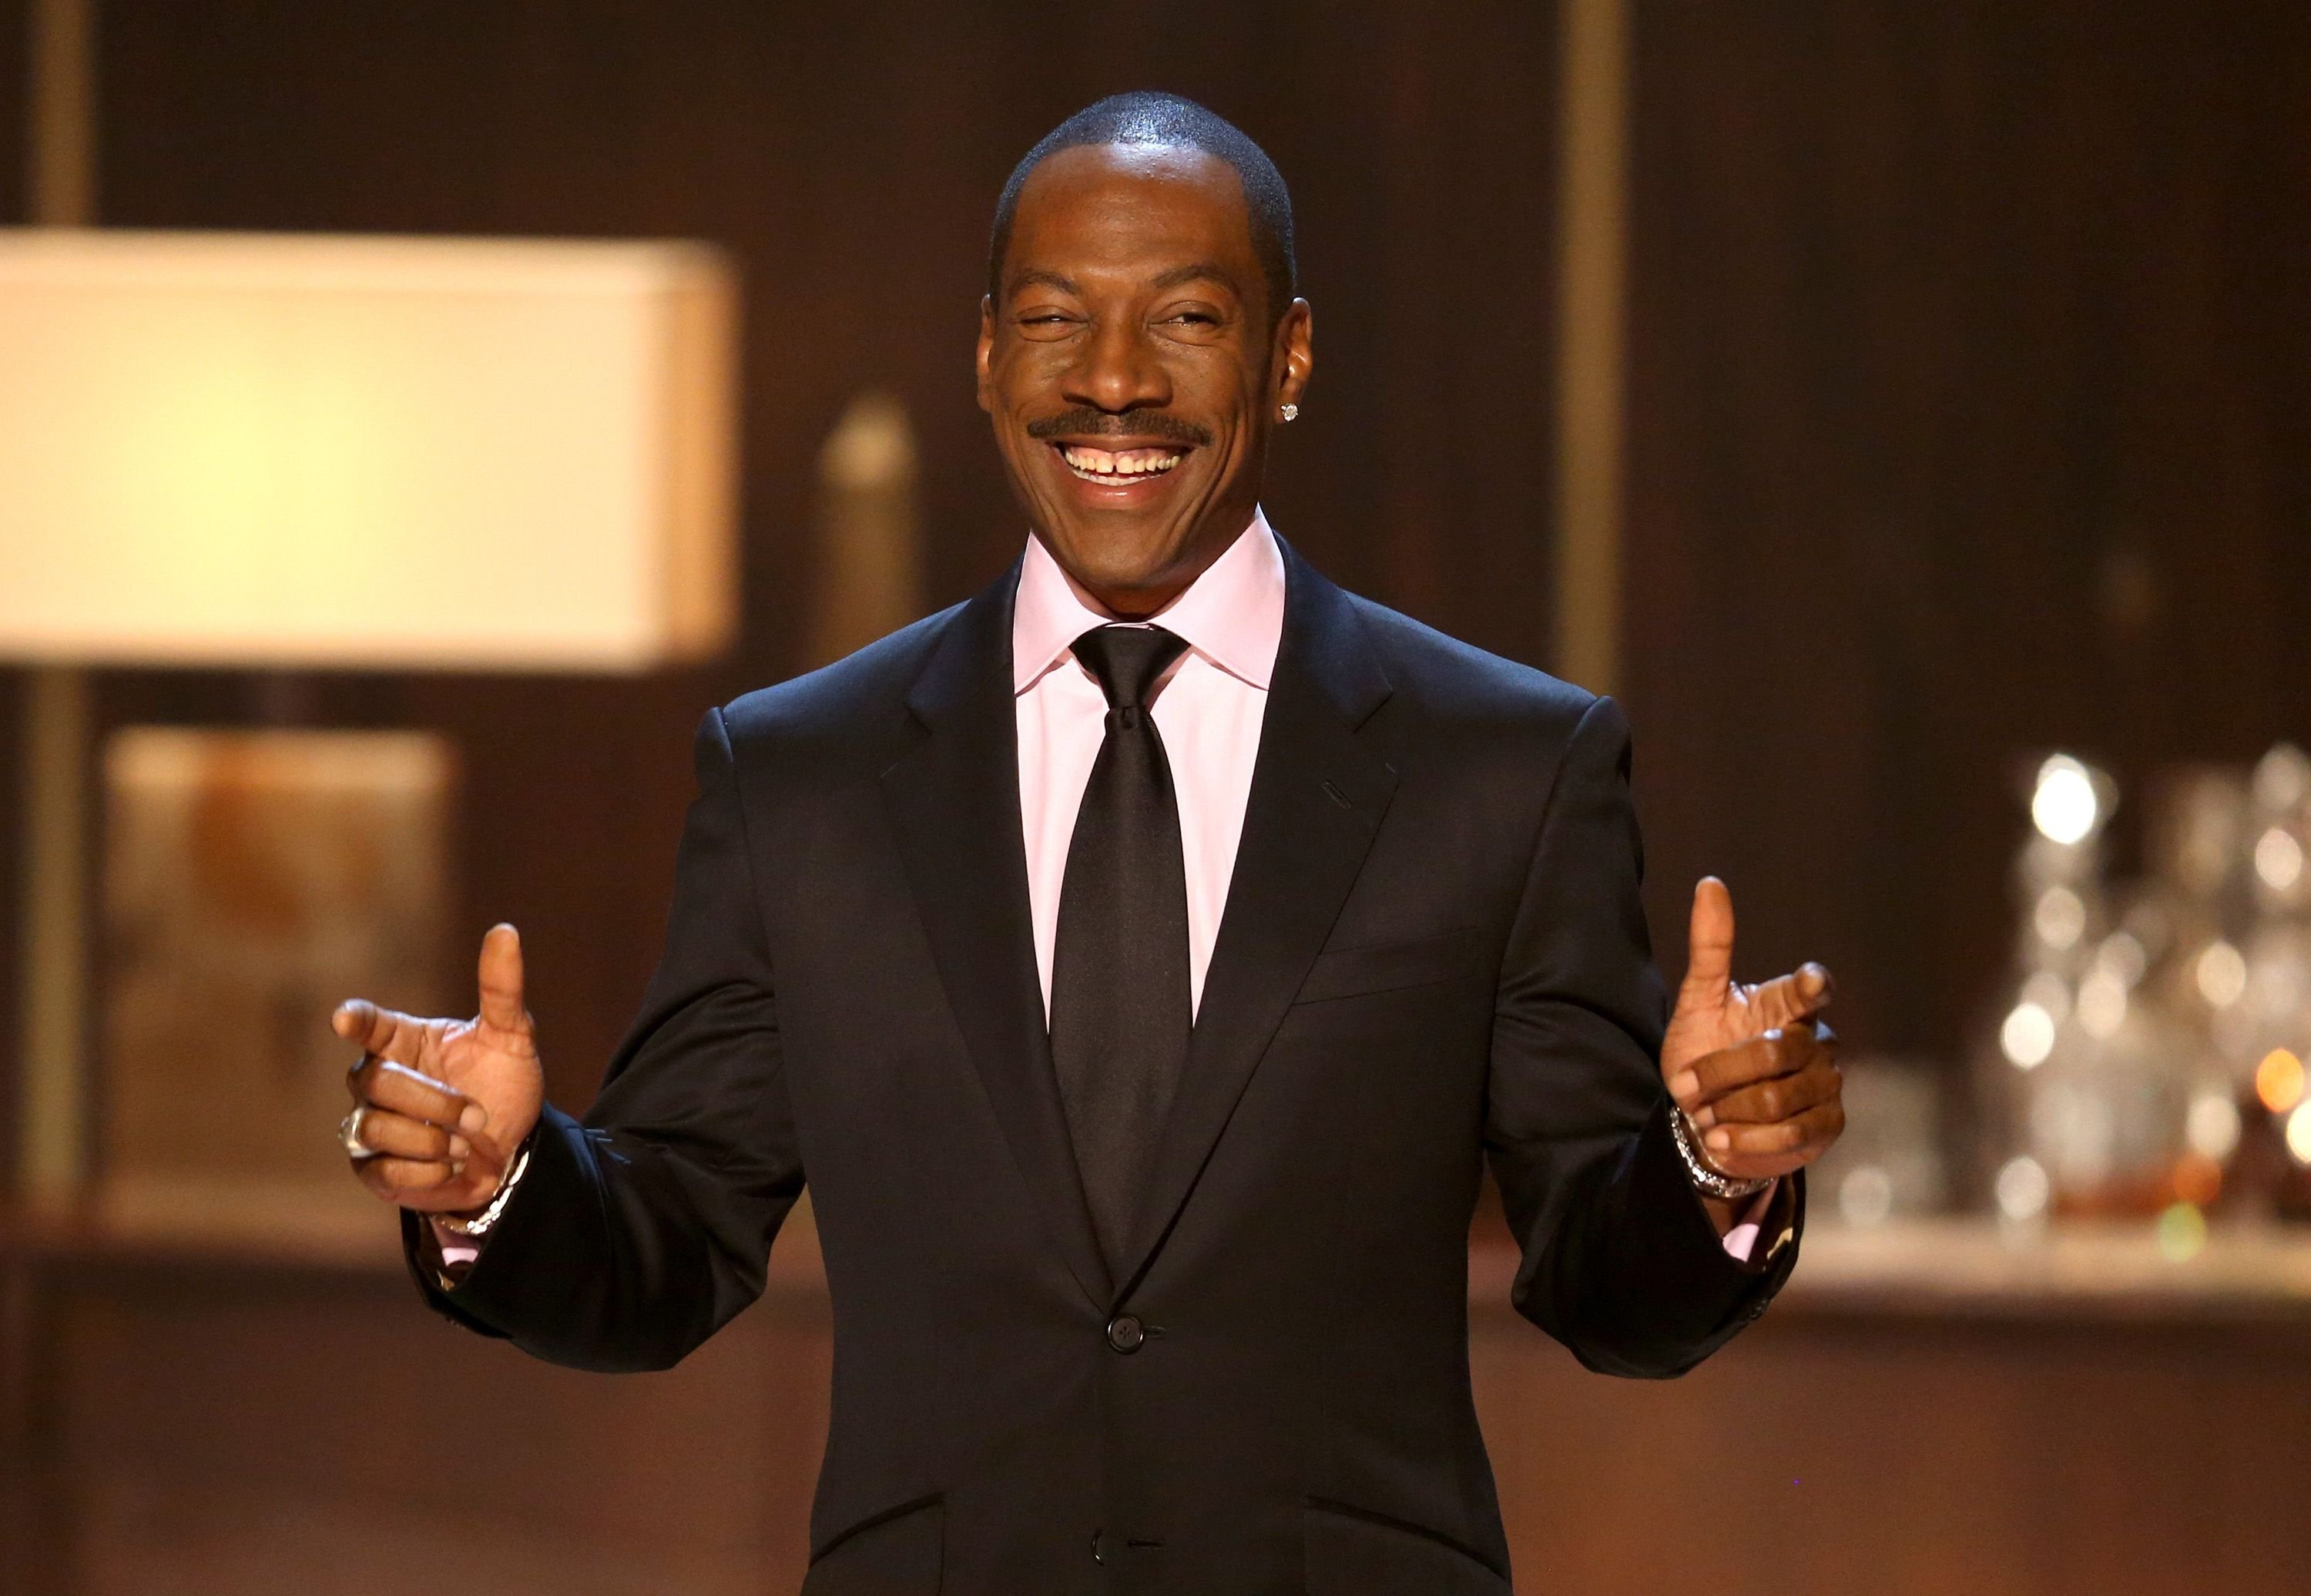 """Eddie Murphy at Spike TV's """"Eddie Murphy: One Night Only"""" at the Saban Theatre on November 3, 2012. 